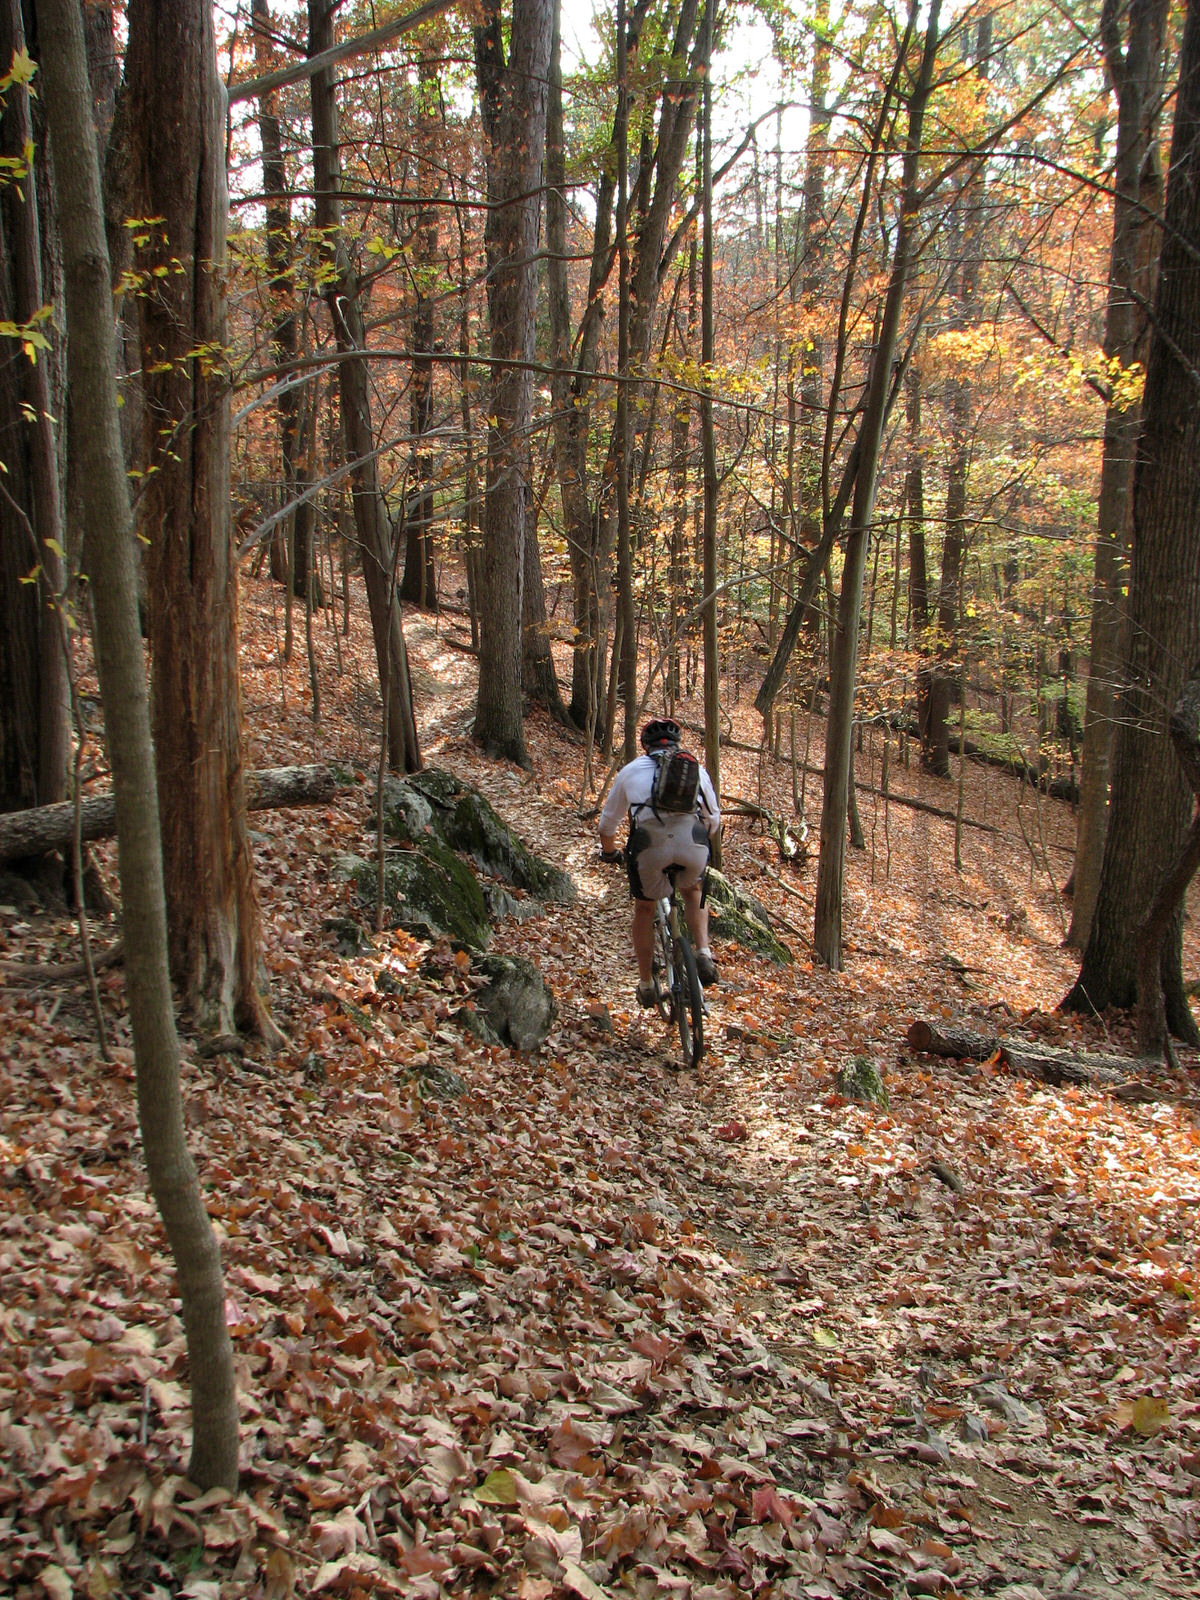 photo: Mountain biker on trail. Photo by Warriors' Path State Park.